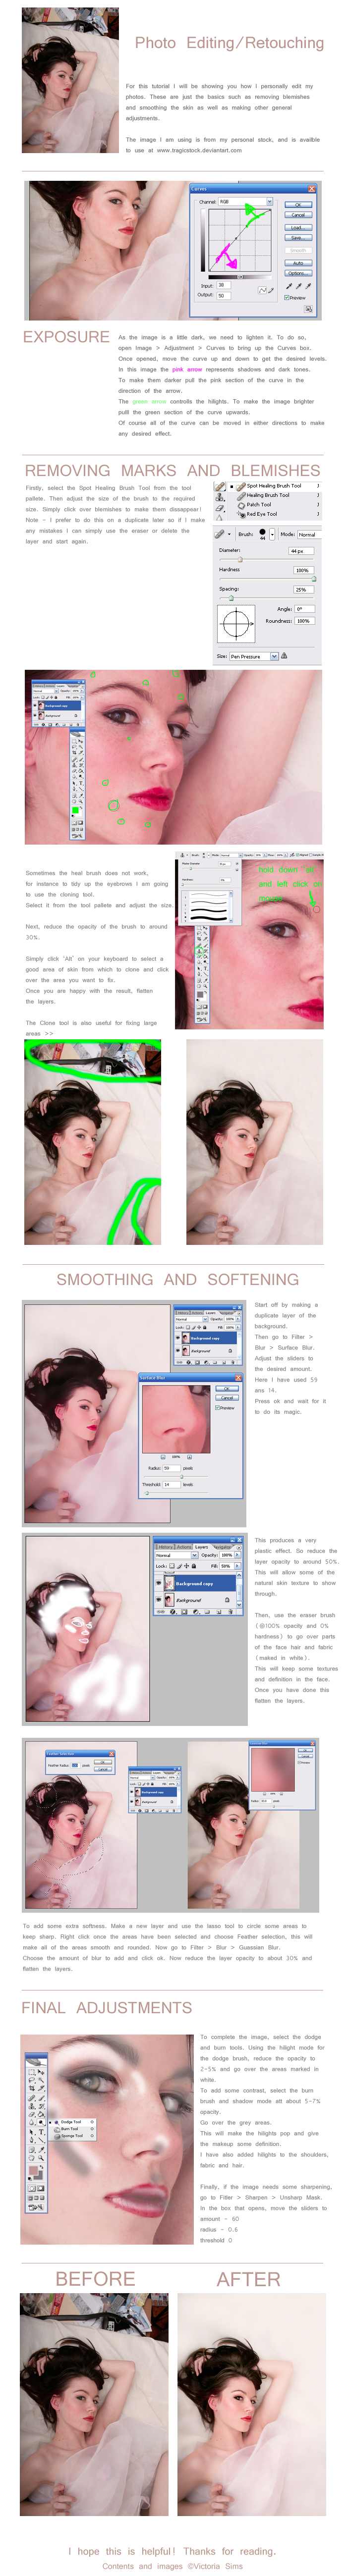 Basic Photo Editing Tutorial